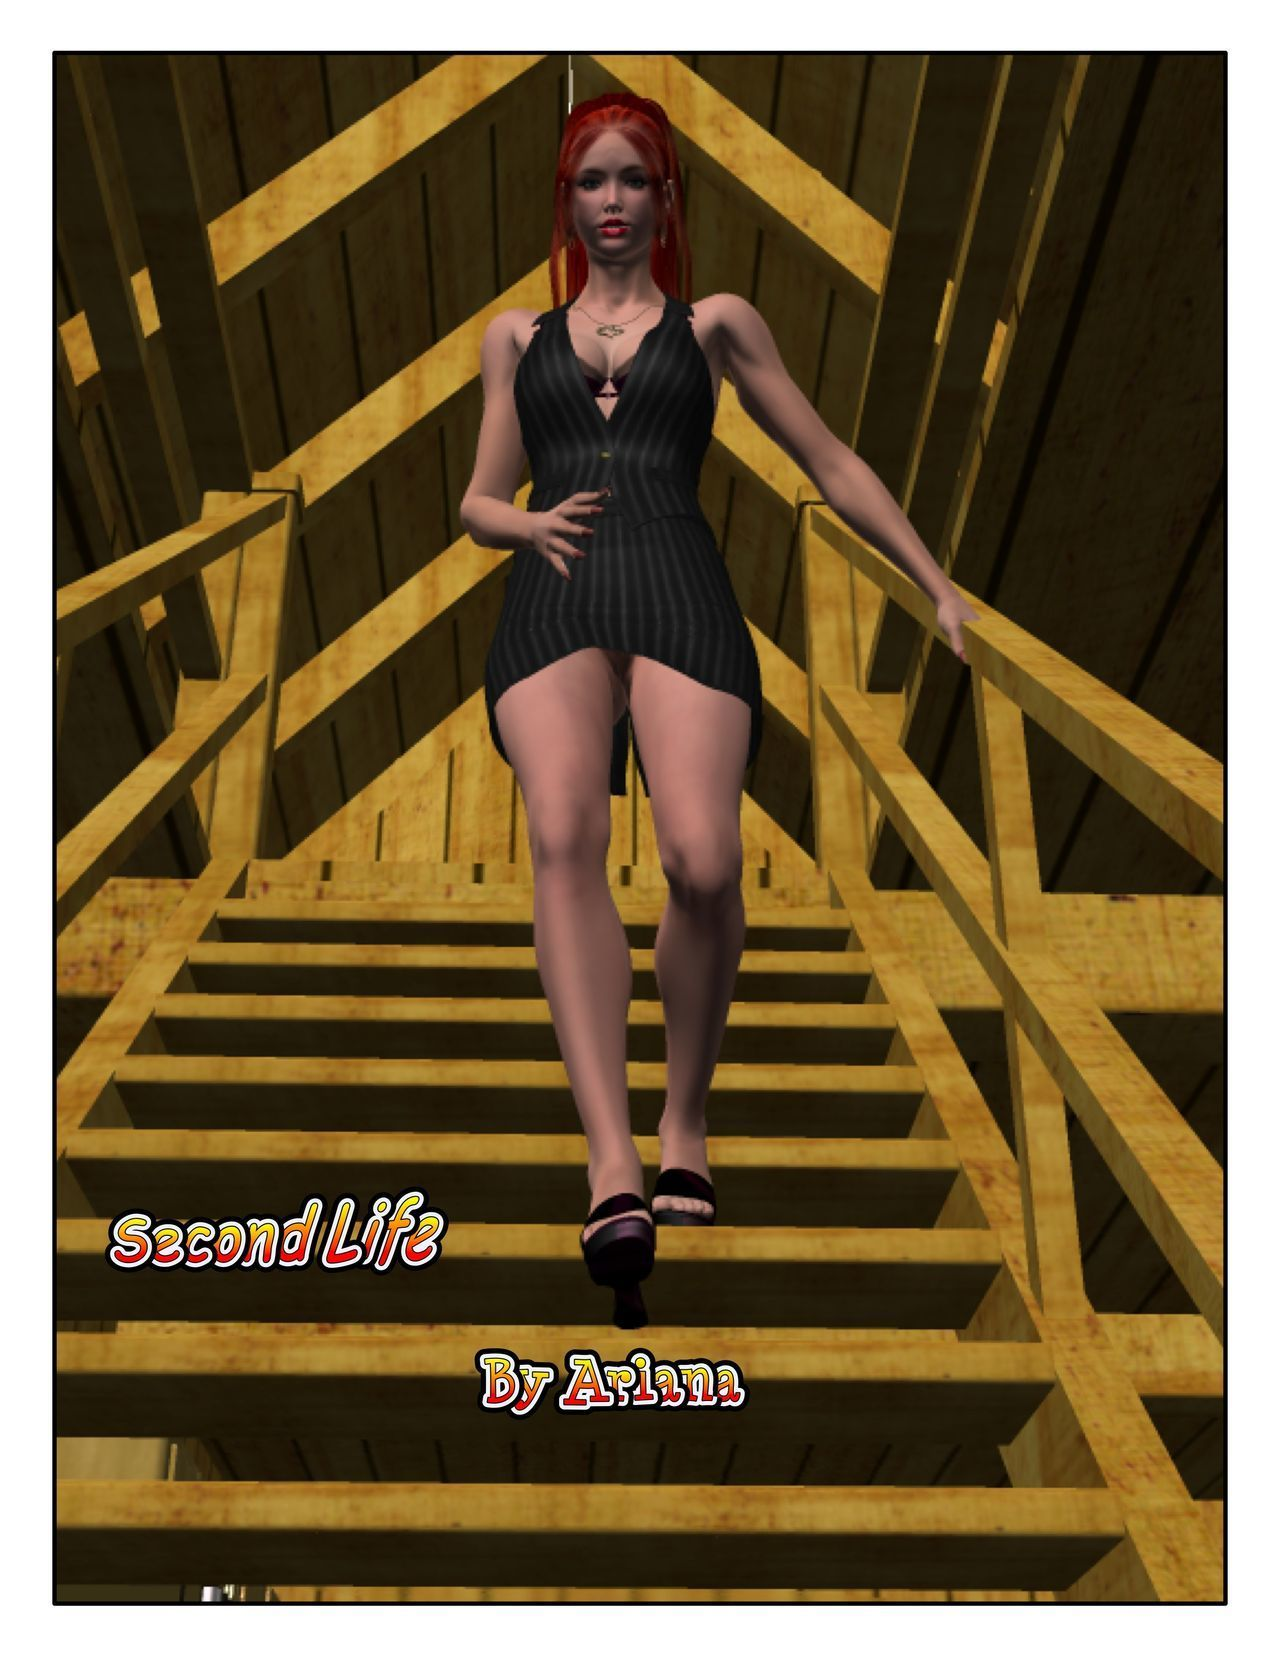 [Ariana] Second Life